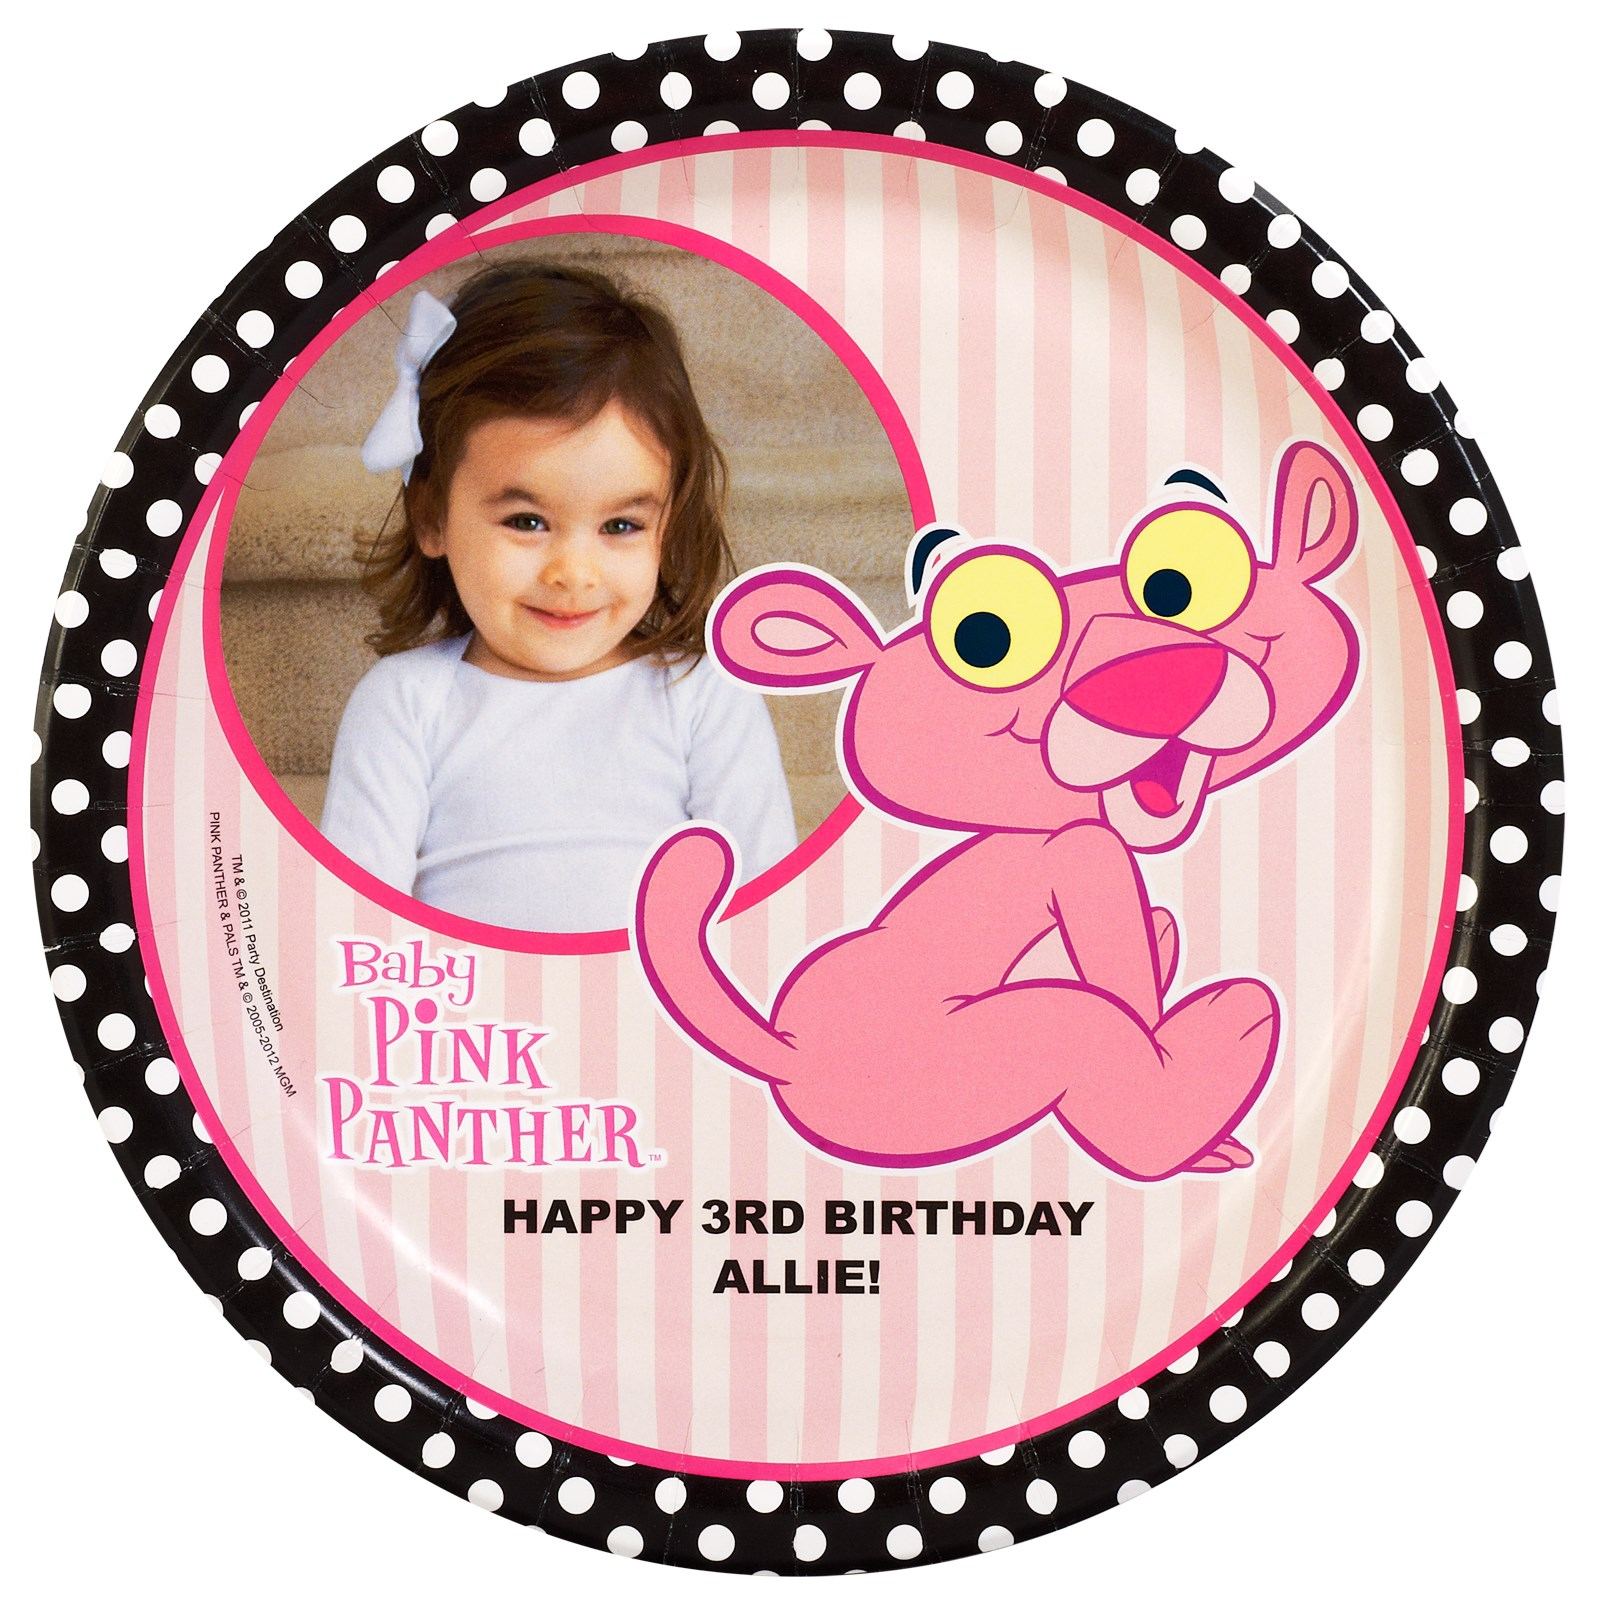 Baby Pink Panther Personalized Dinner Plates